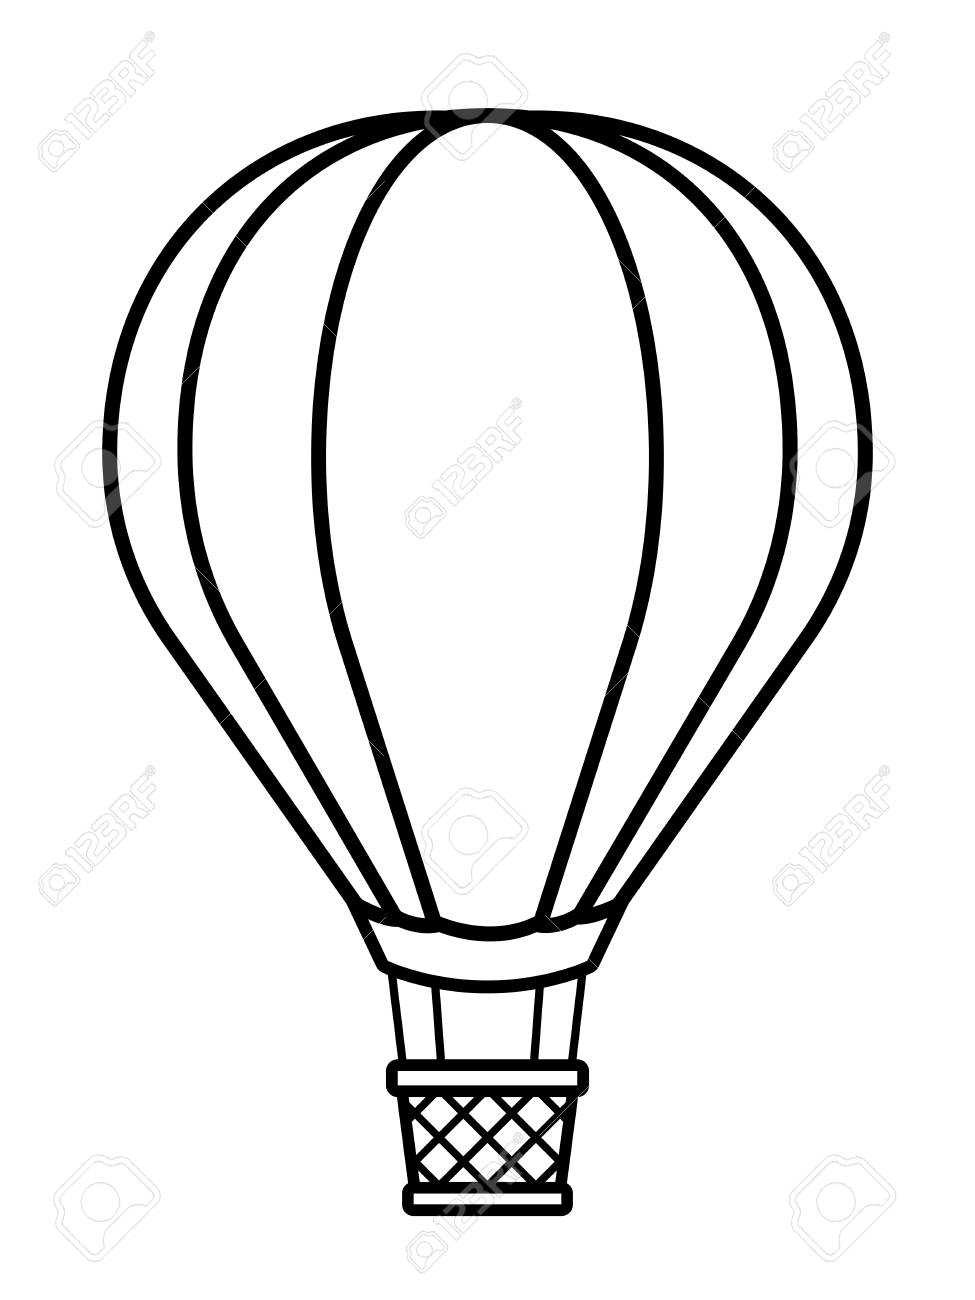 Vector illustration of silhouette hot air balloon over white...